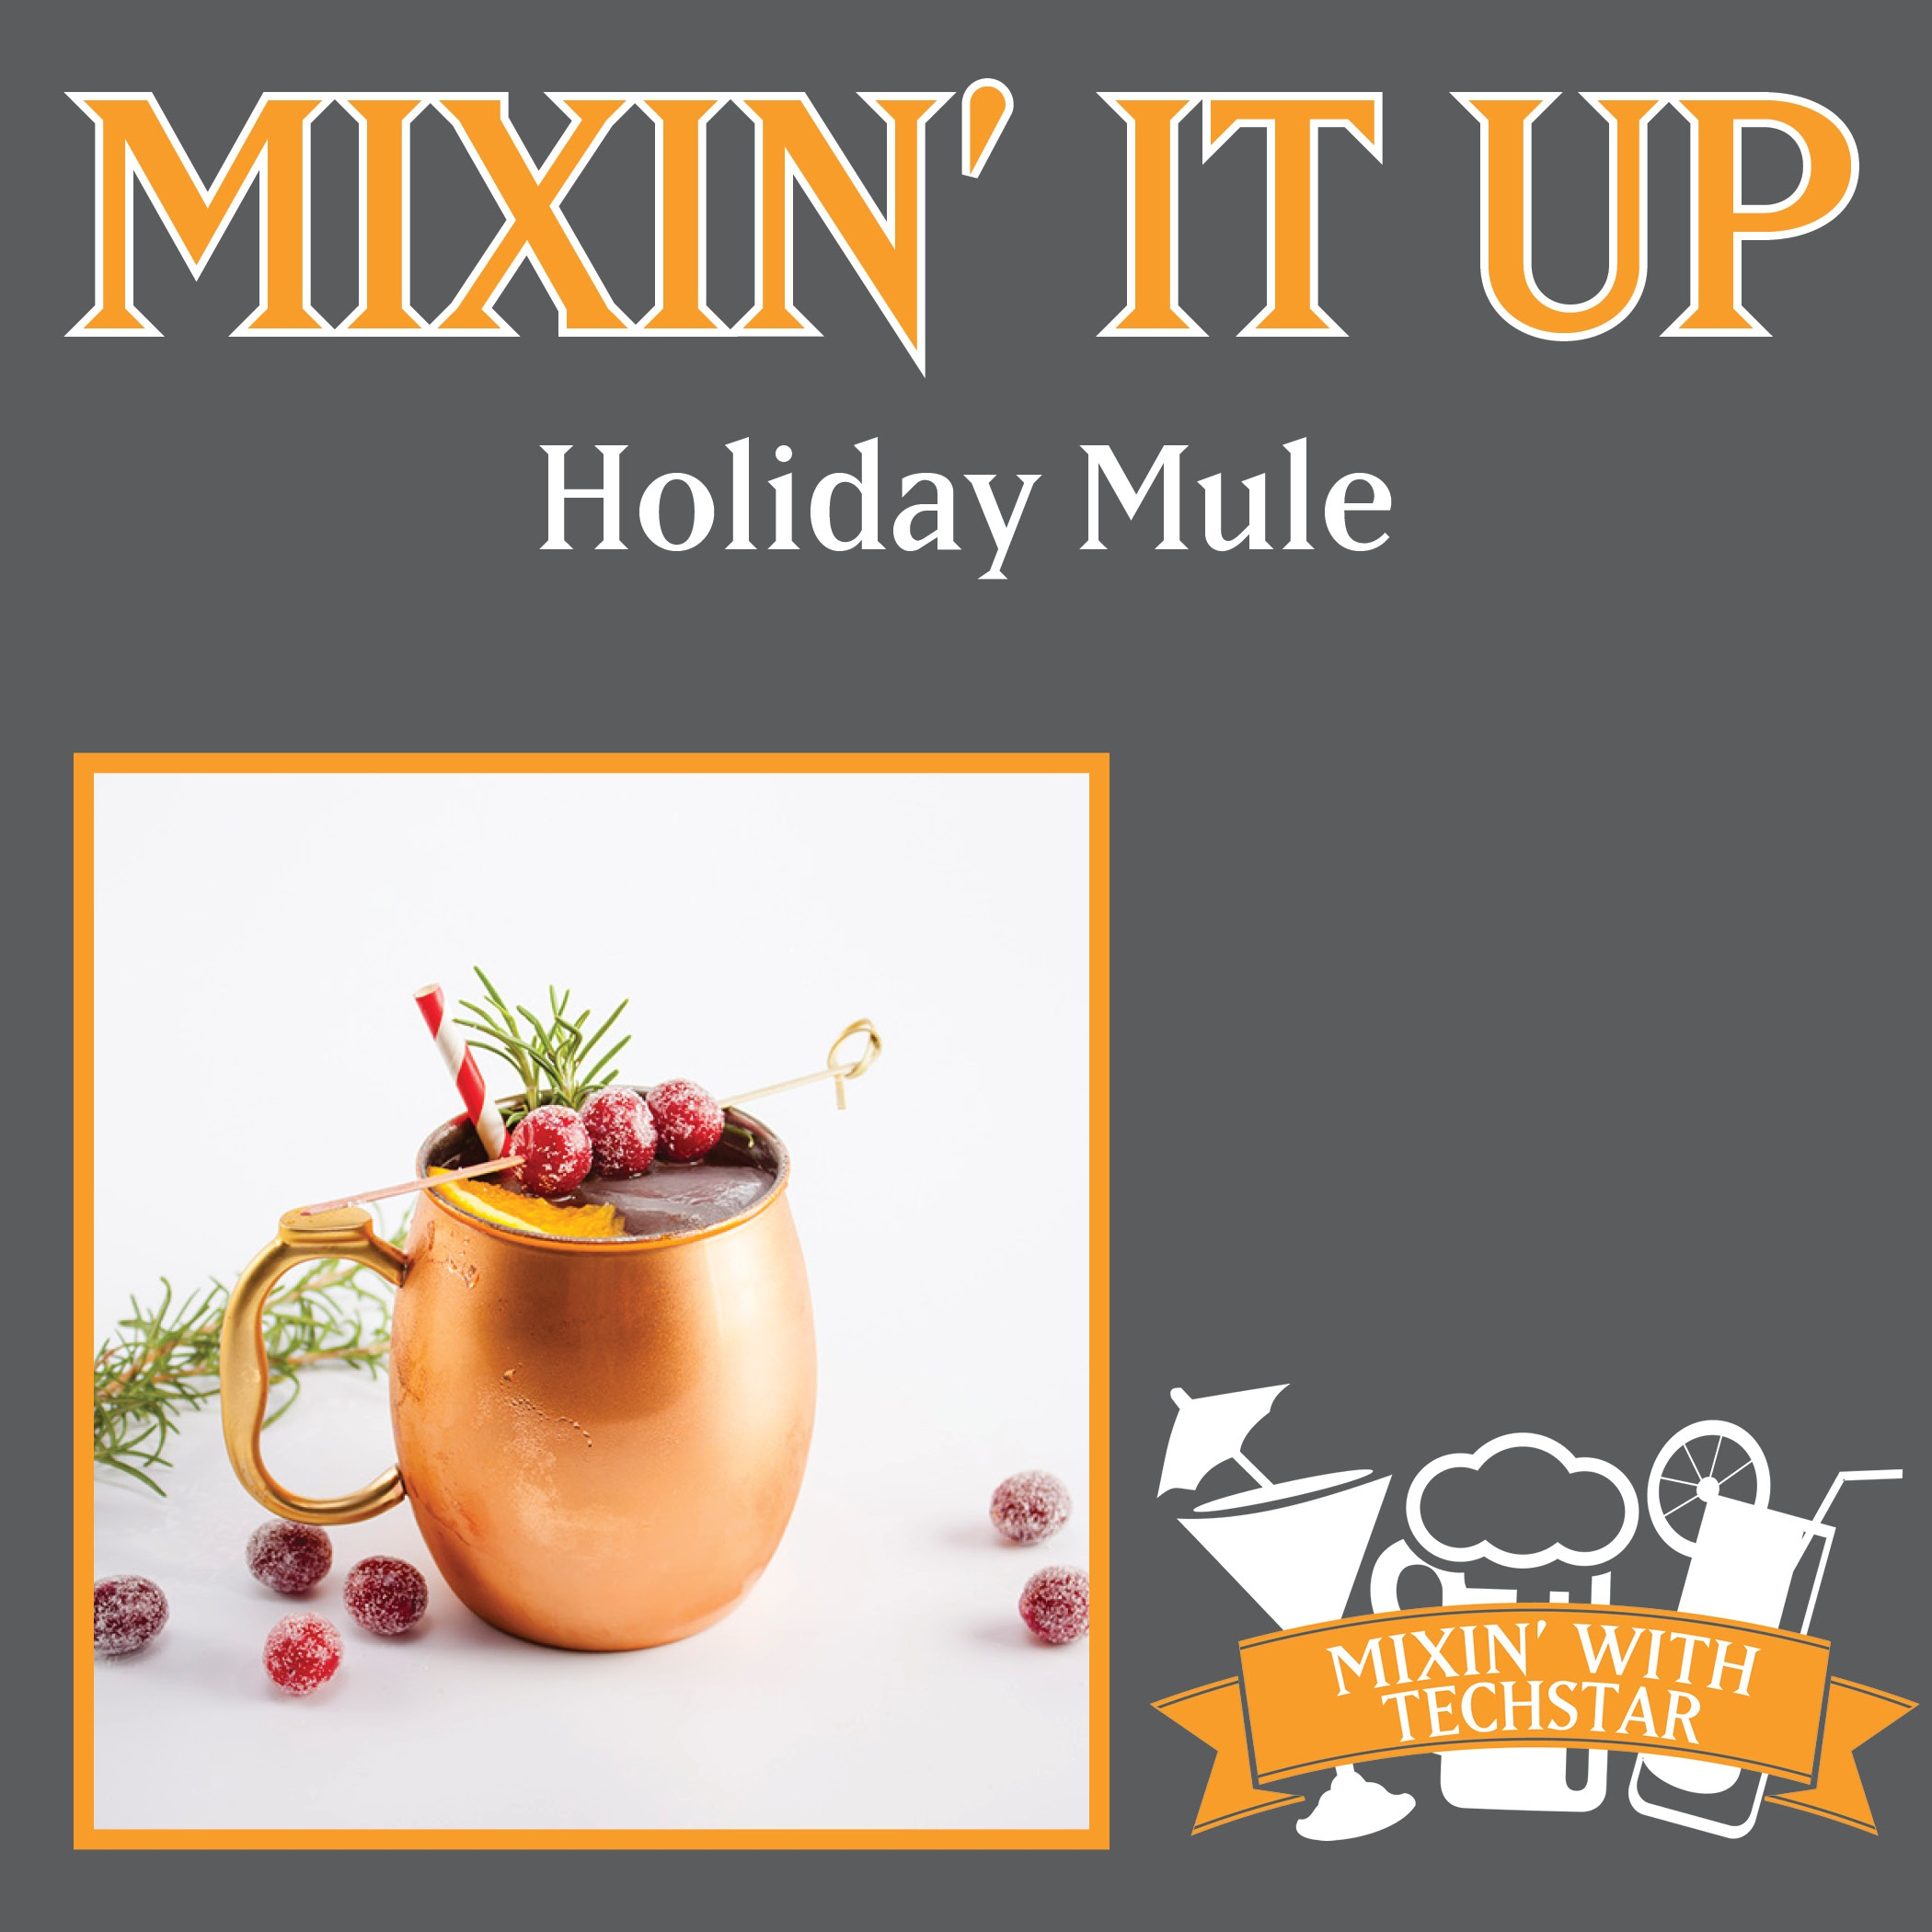 Holiday-Mule-Post.jpg